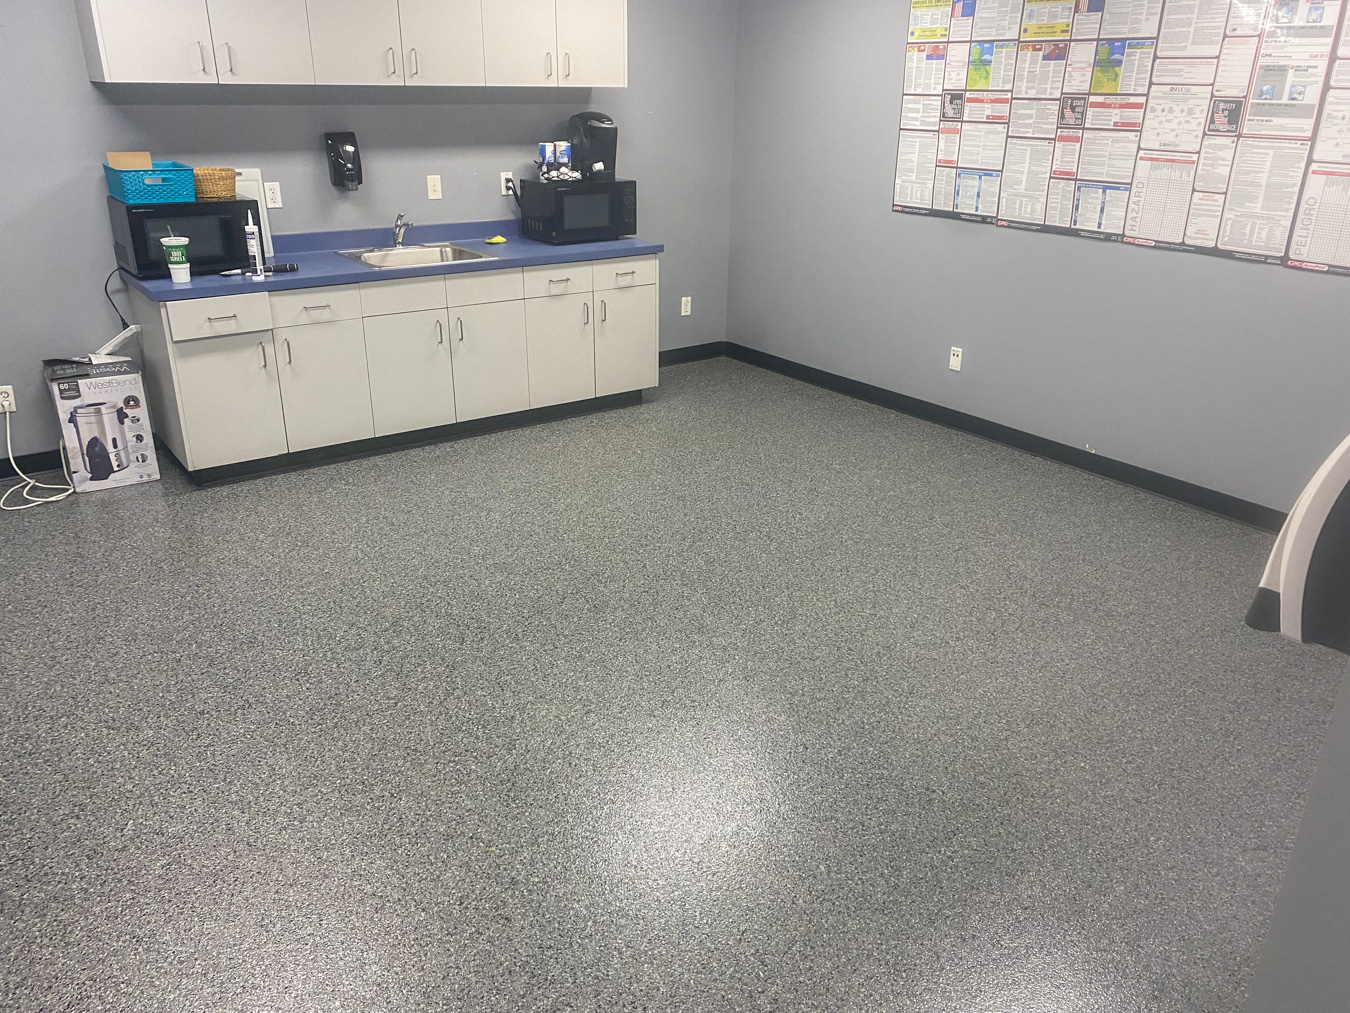 Concrete epoxy coating in a staff work room